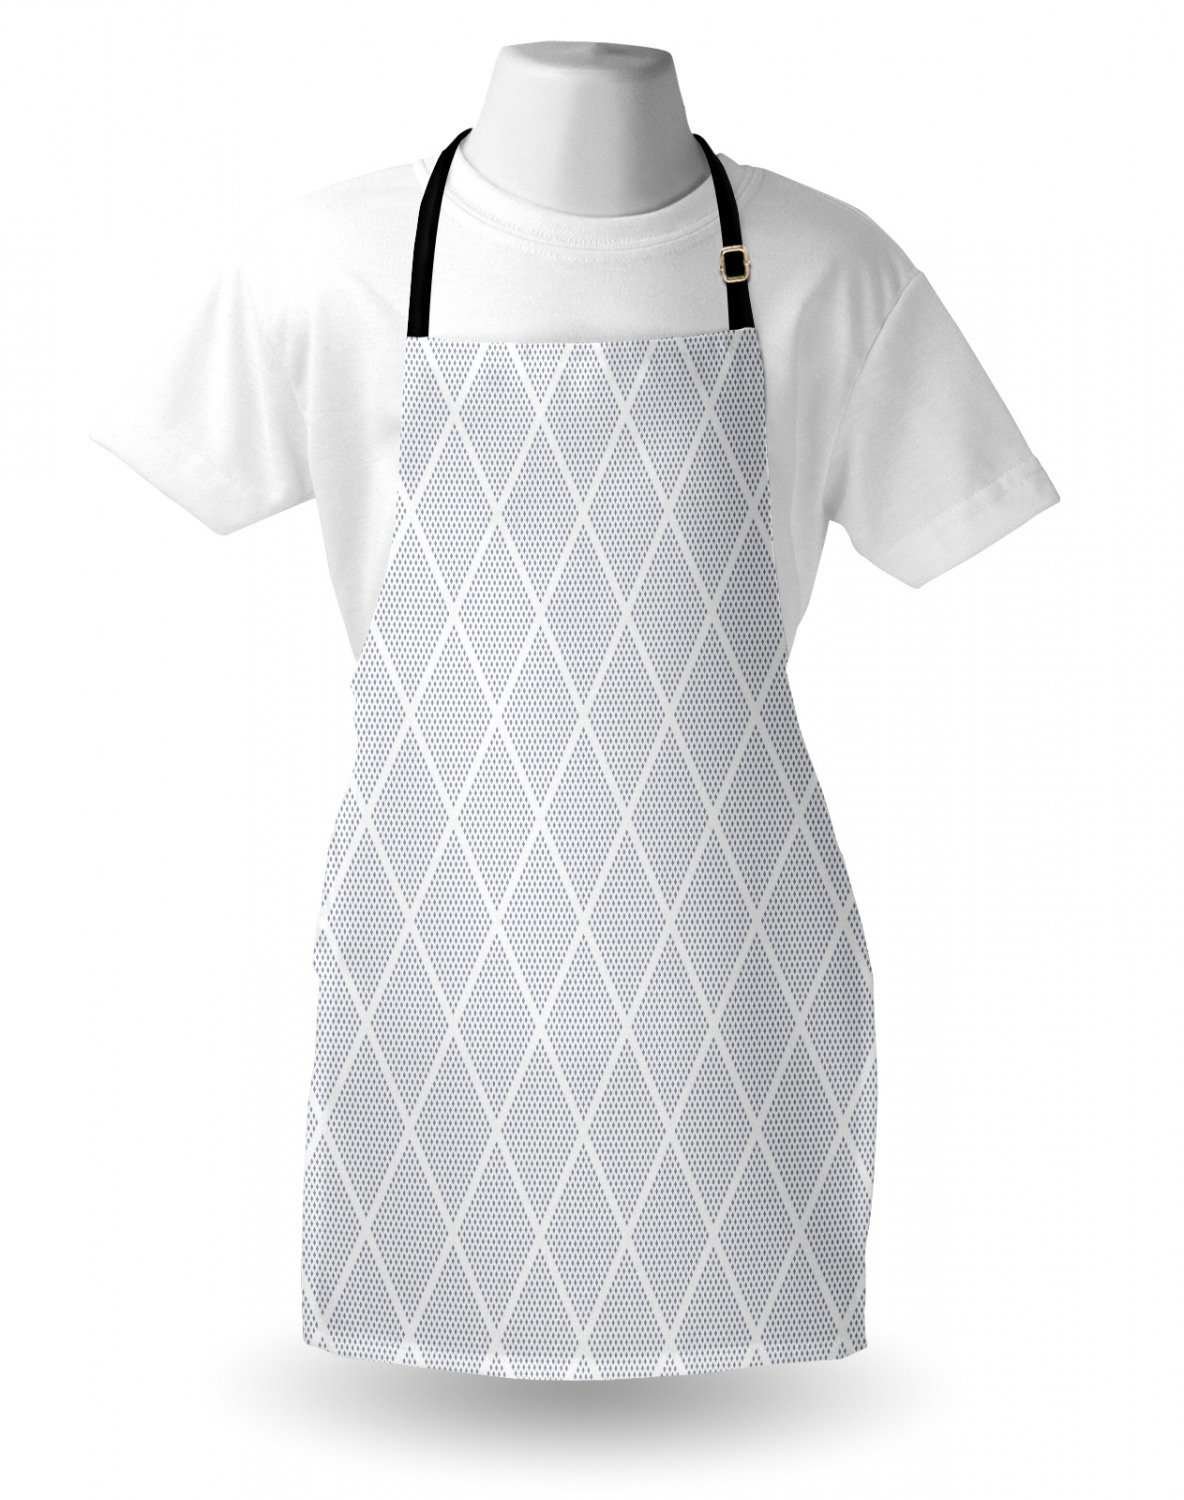 Ambesonne-Outdoor-Use-Apron-with-Adjustable-Neck-Strap-for-Gardening-and-Cooking miniatura 51